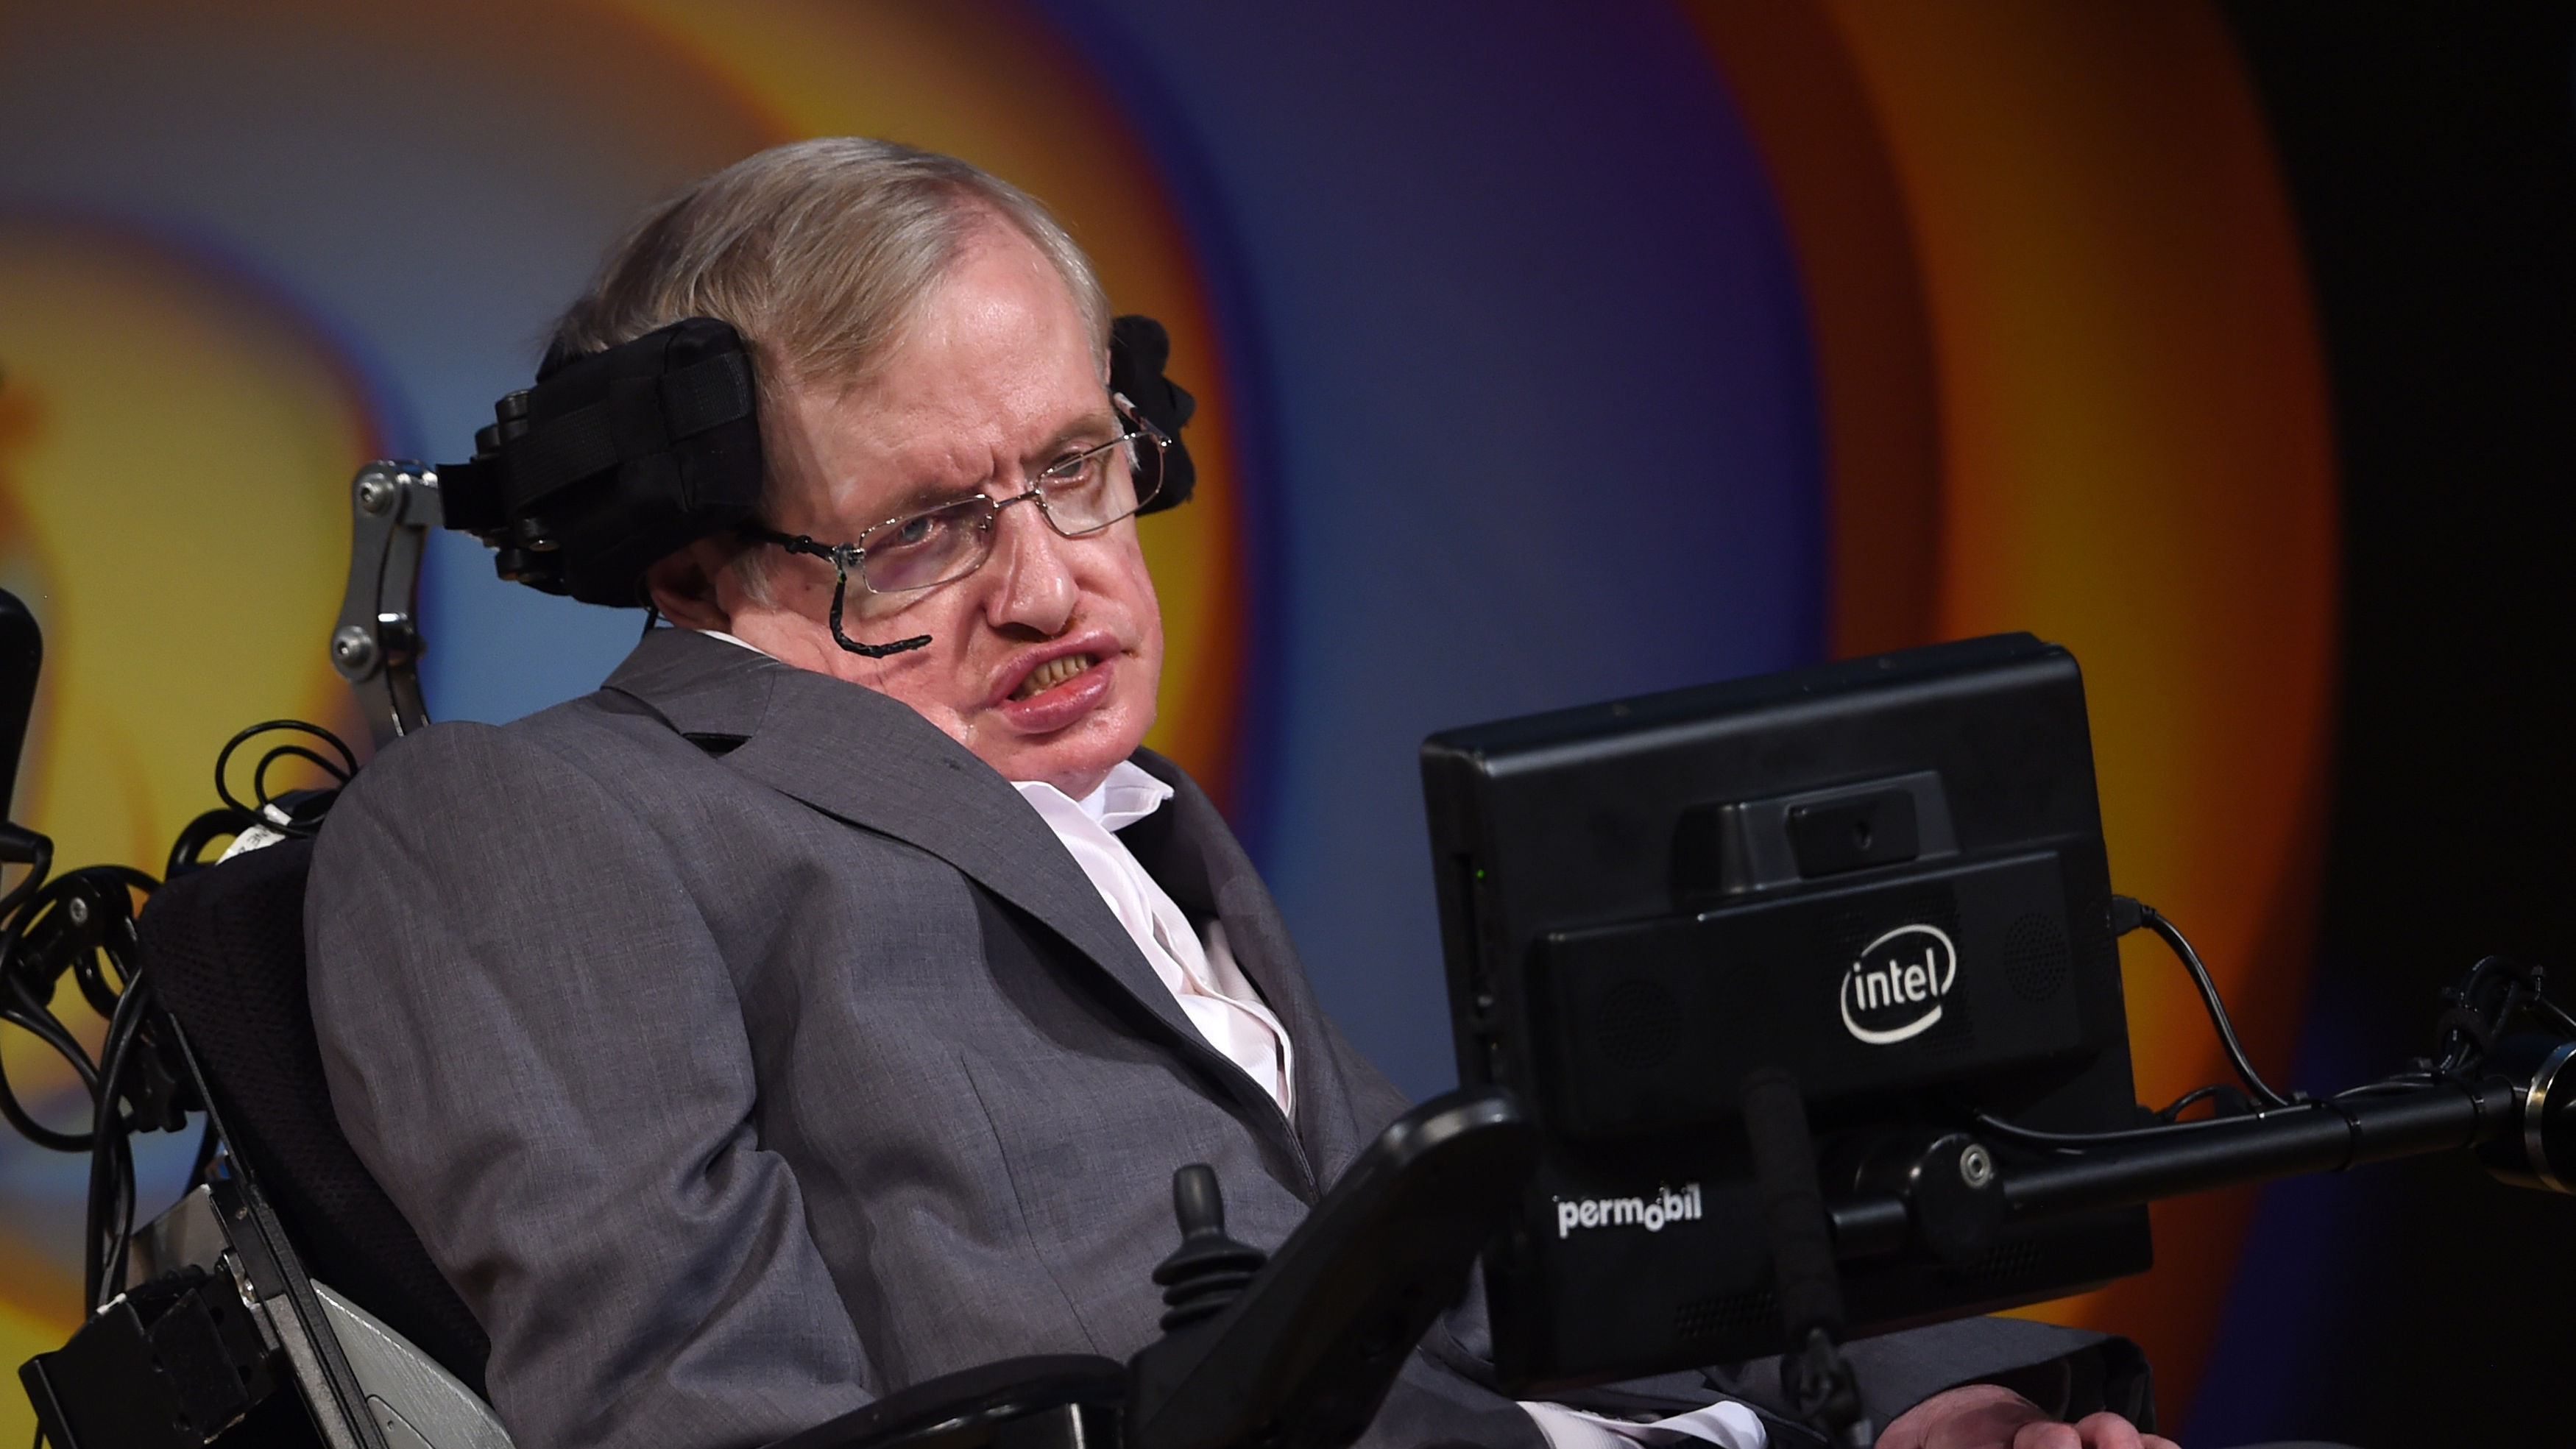 Celebrities mourn Hawking's death at funeral